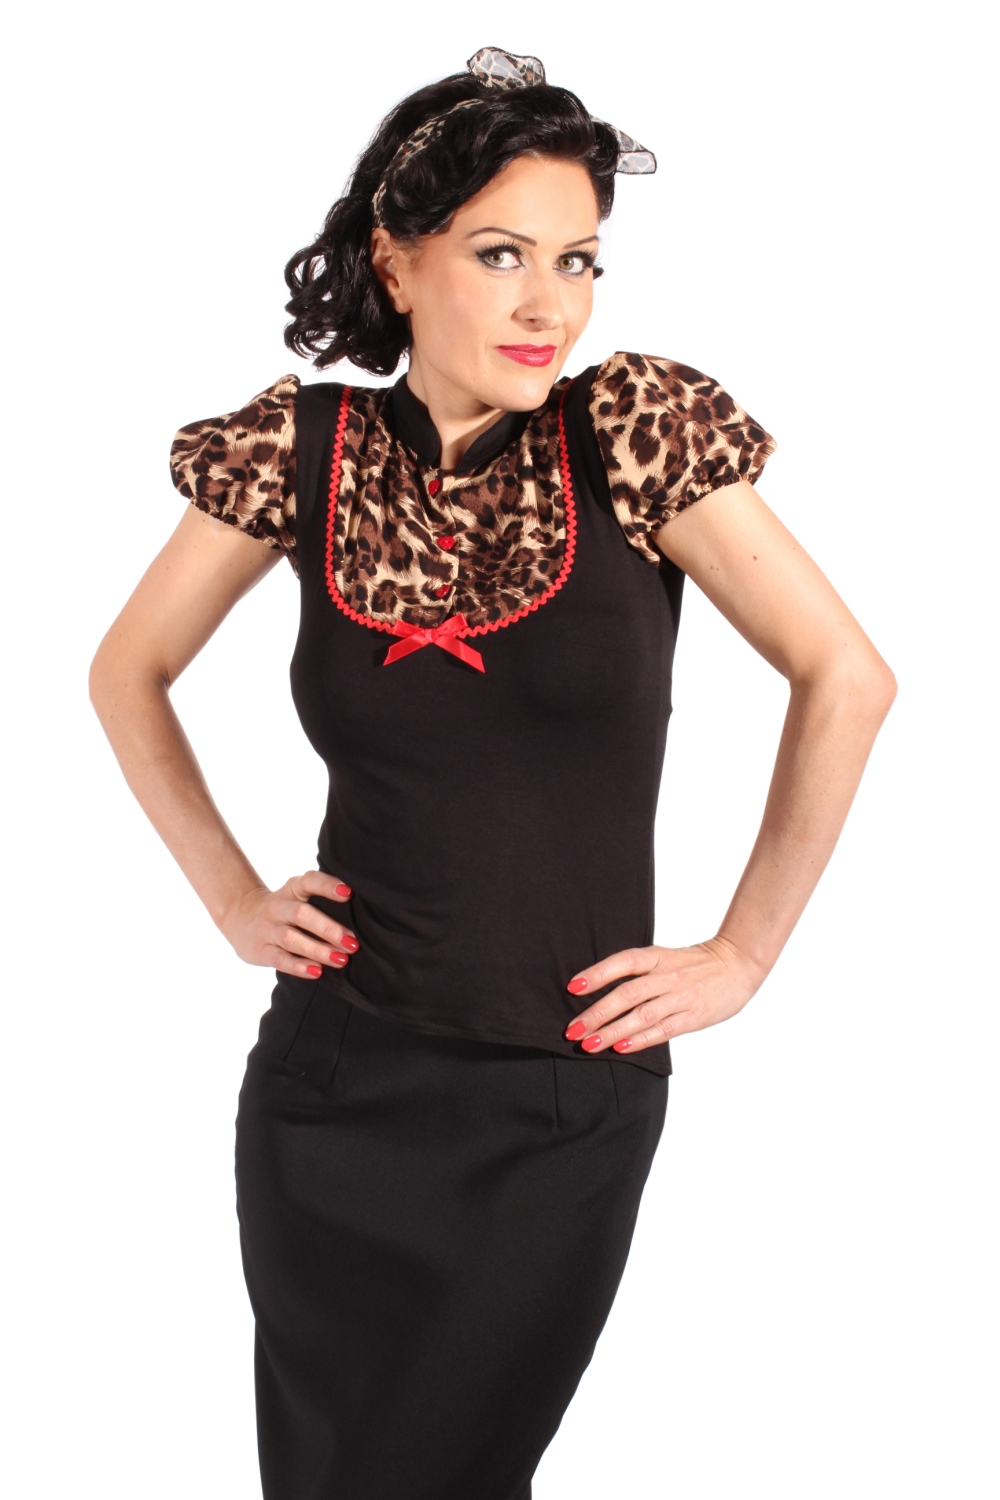 Retro Puffärmel Leoparden pin up Rockabilly Leo Bluse T-Shirt schwarz